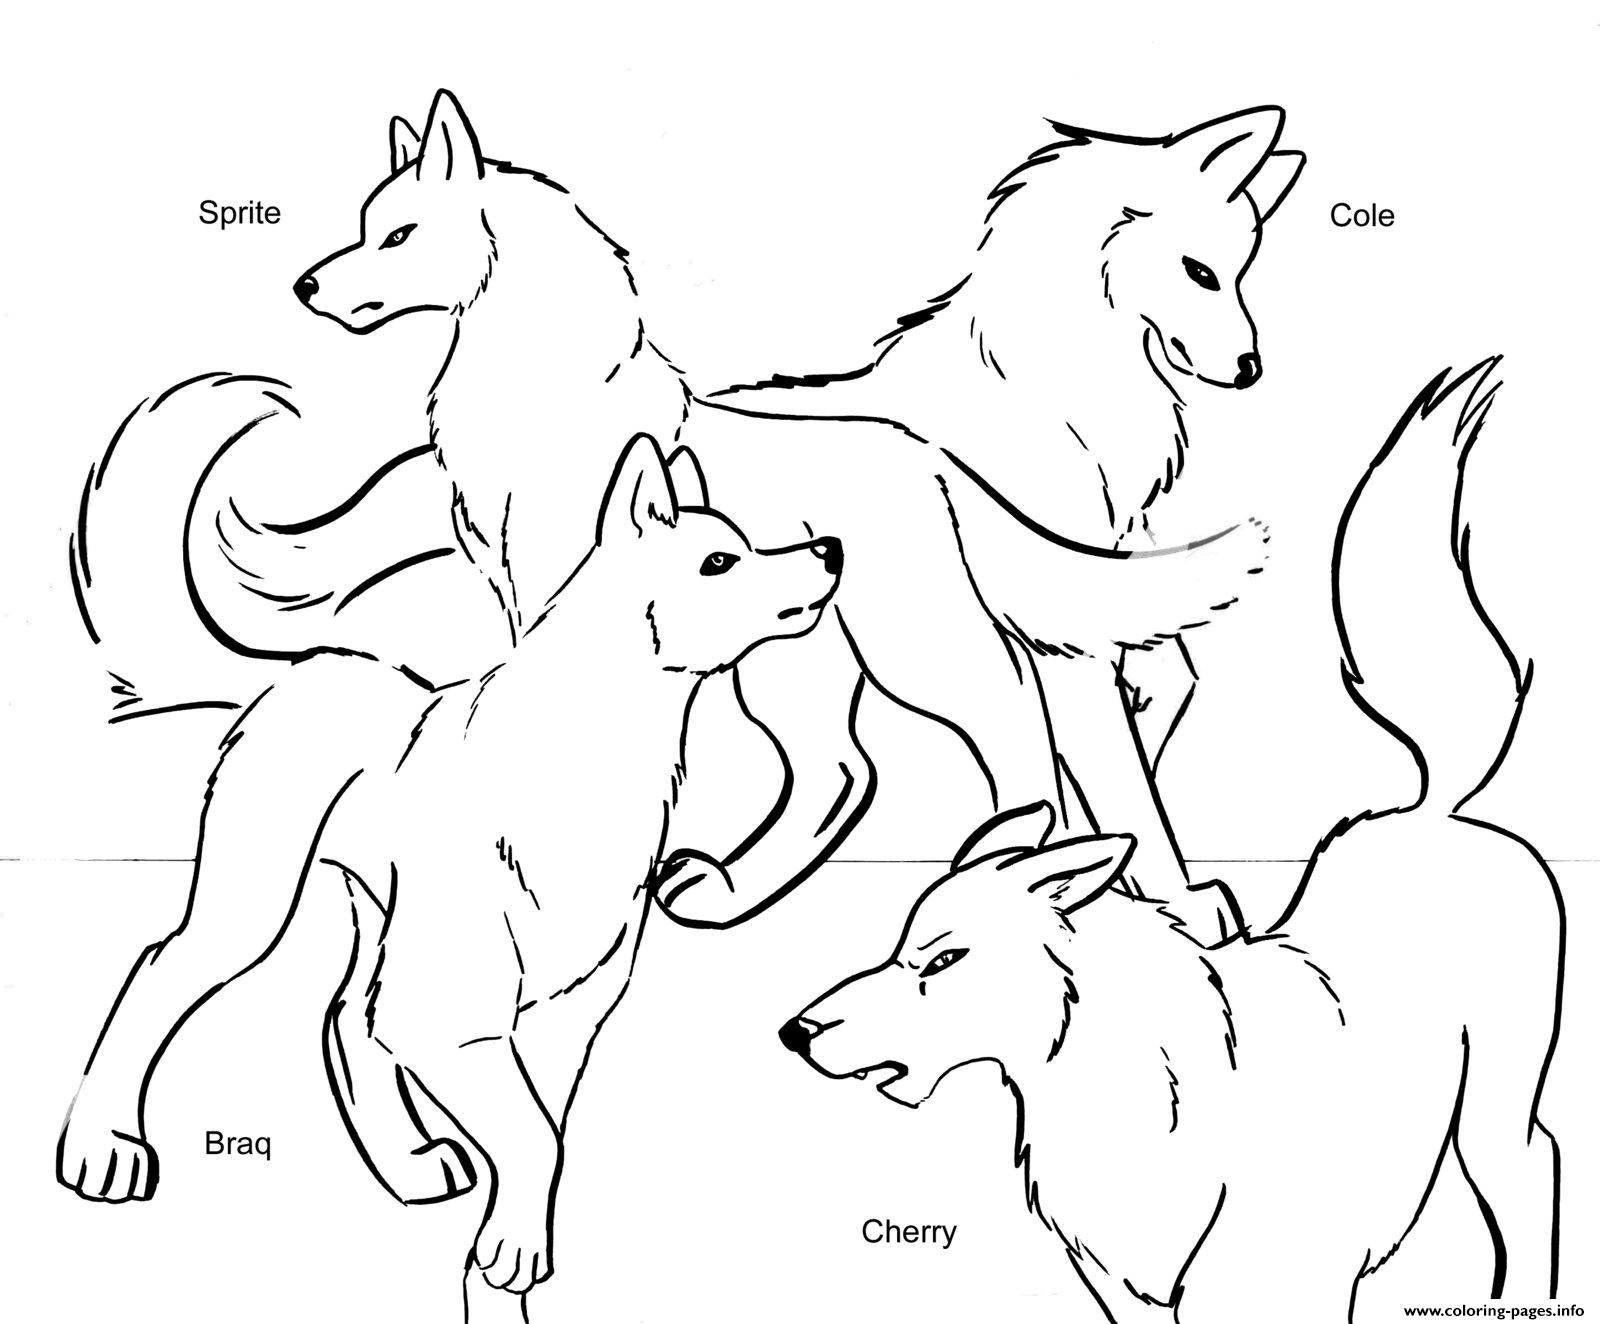 Wolf mandala coloring pages - Wolf Pack Team Colouring Print Wolf Pack Team Coloring Pages